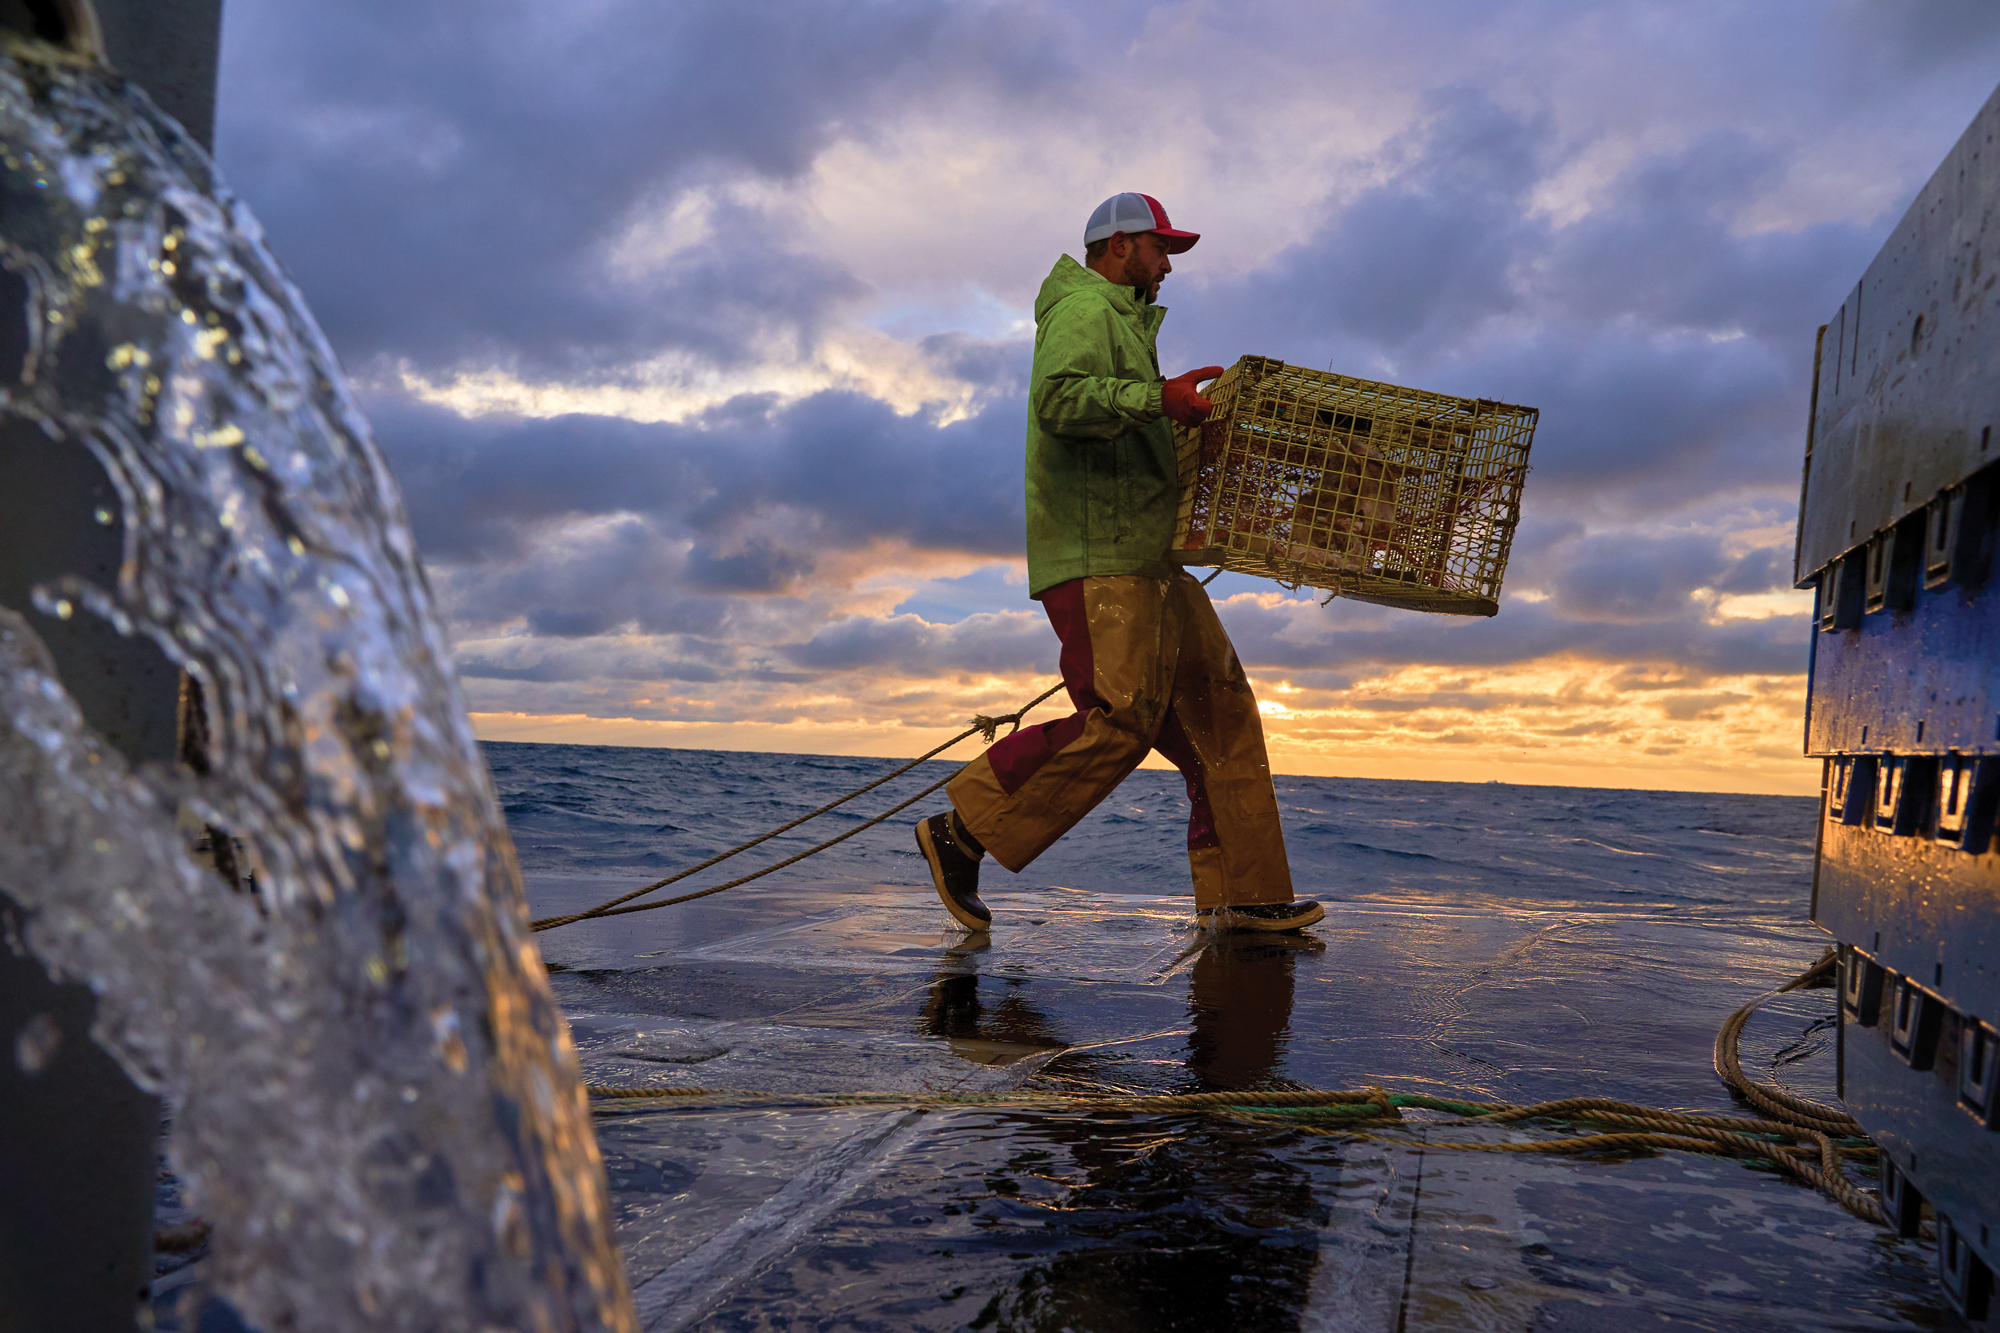 Carrying a baited lobster trap